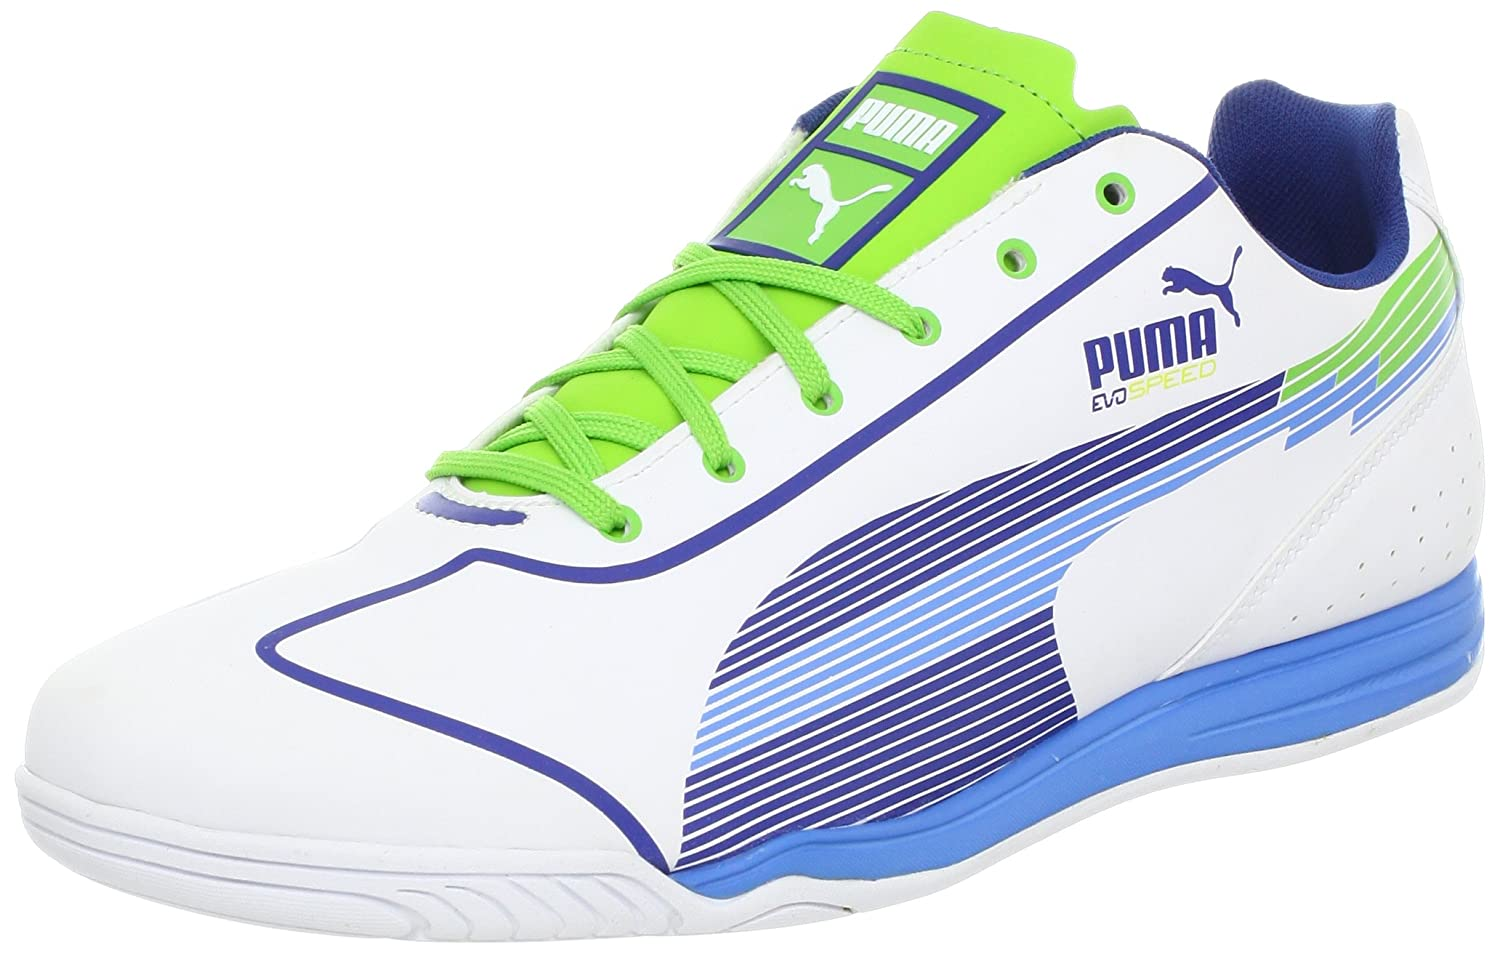 Puma evoSPEED Starサッカーシューズ B008AJOPMWWhite/Monaco Blue/Jasmine Green/Flourescent Yellow 13 D US